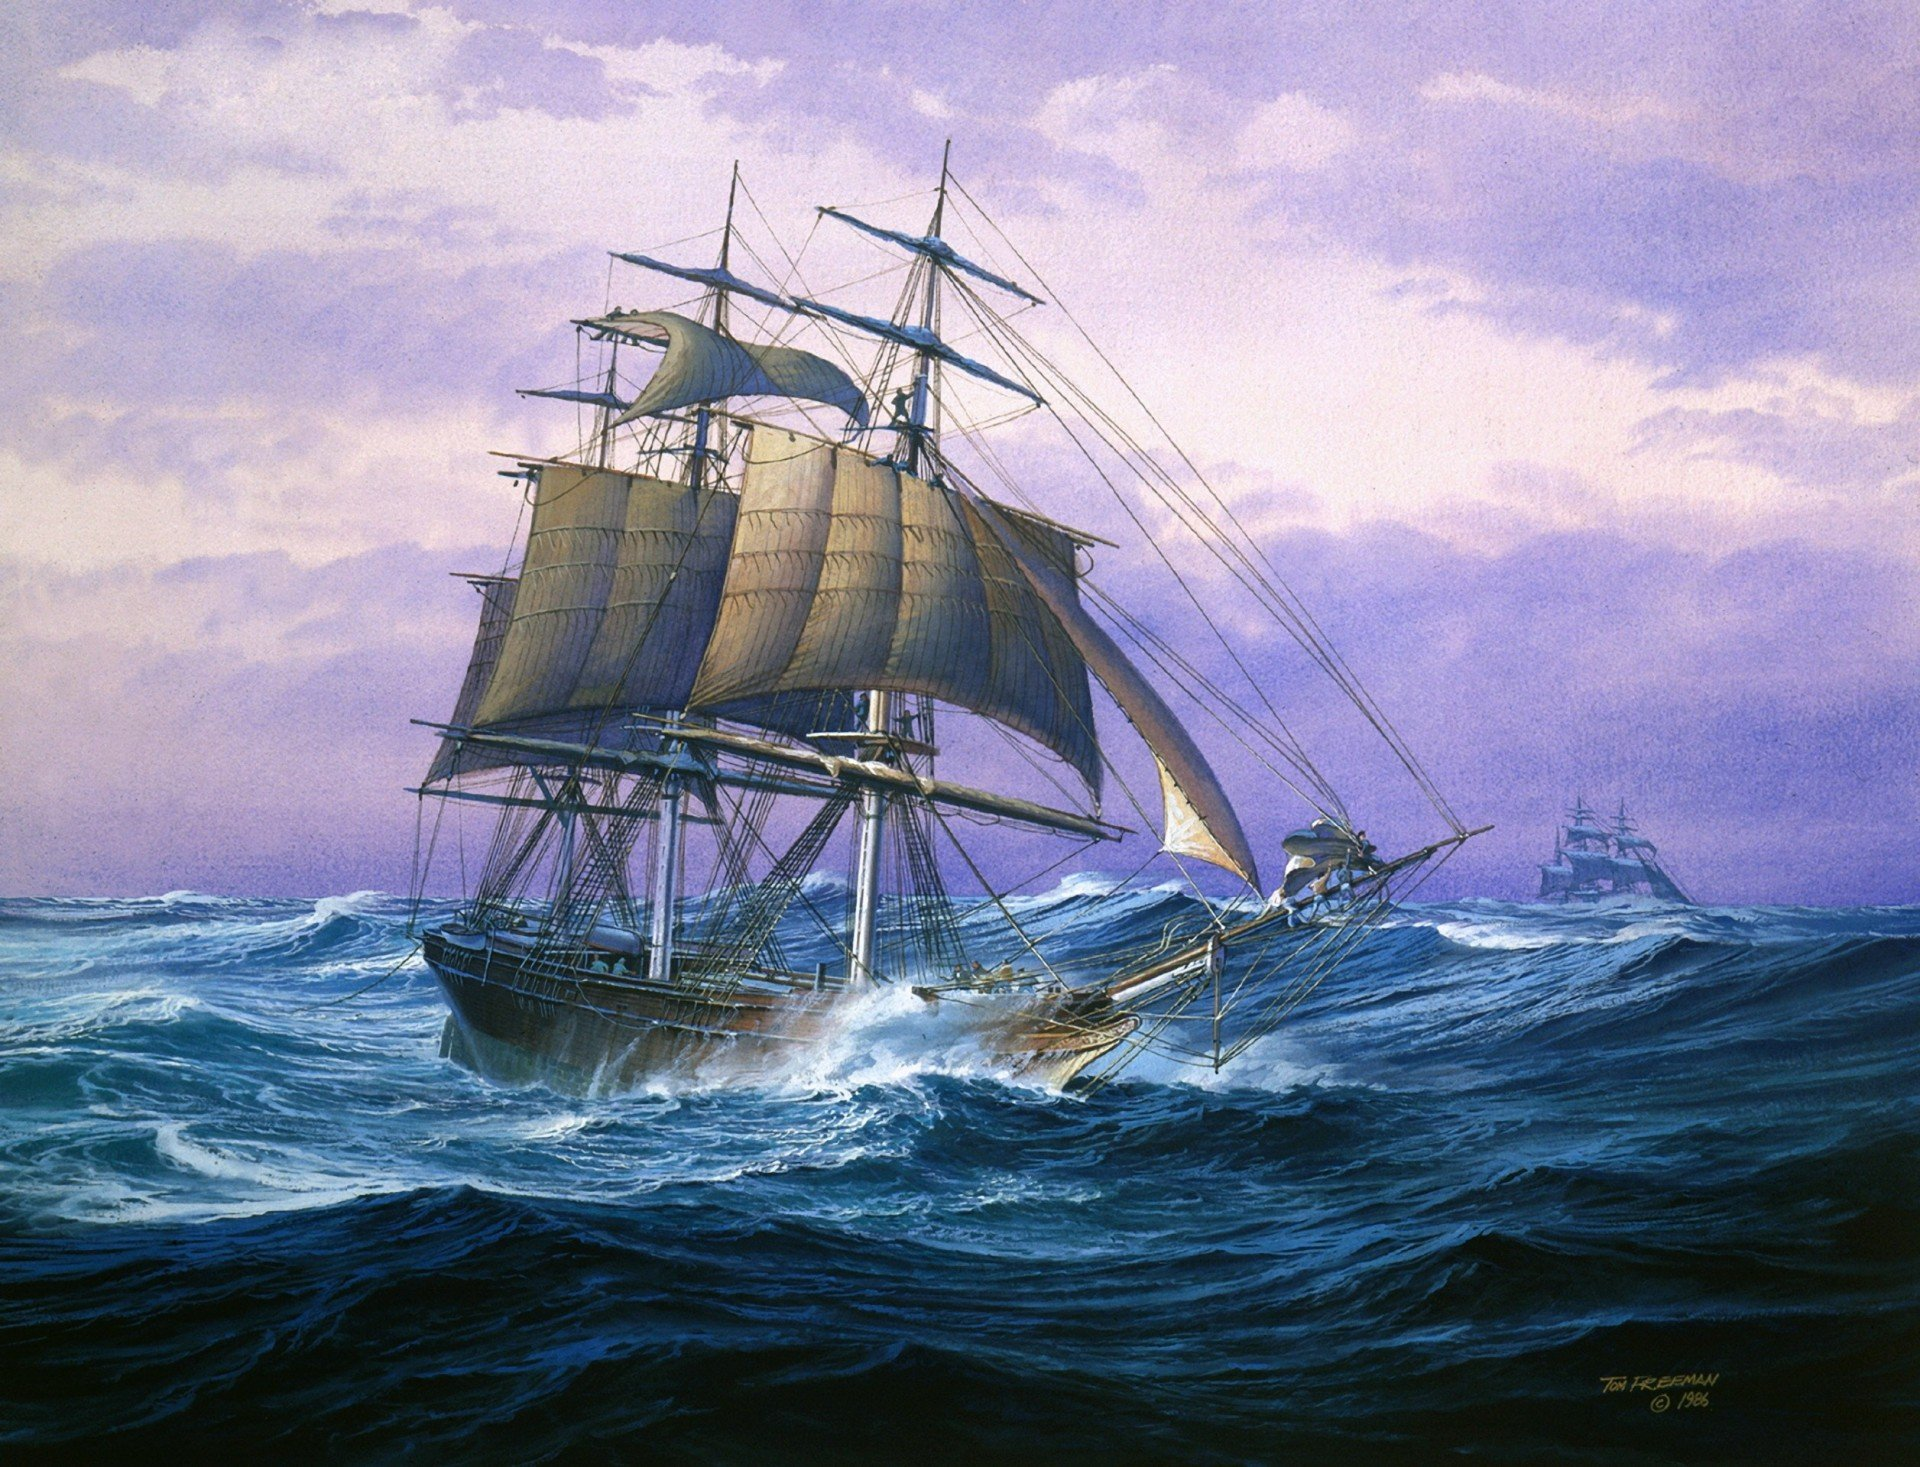 butterfly-brig-bowsprit-rigging-sail-wave-ocean-picture-ship-large-sailboats-storm-rain.jpg